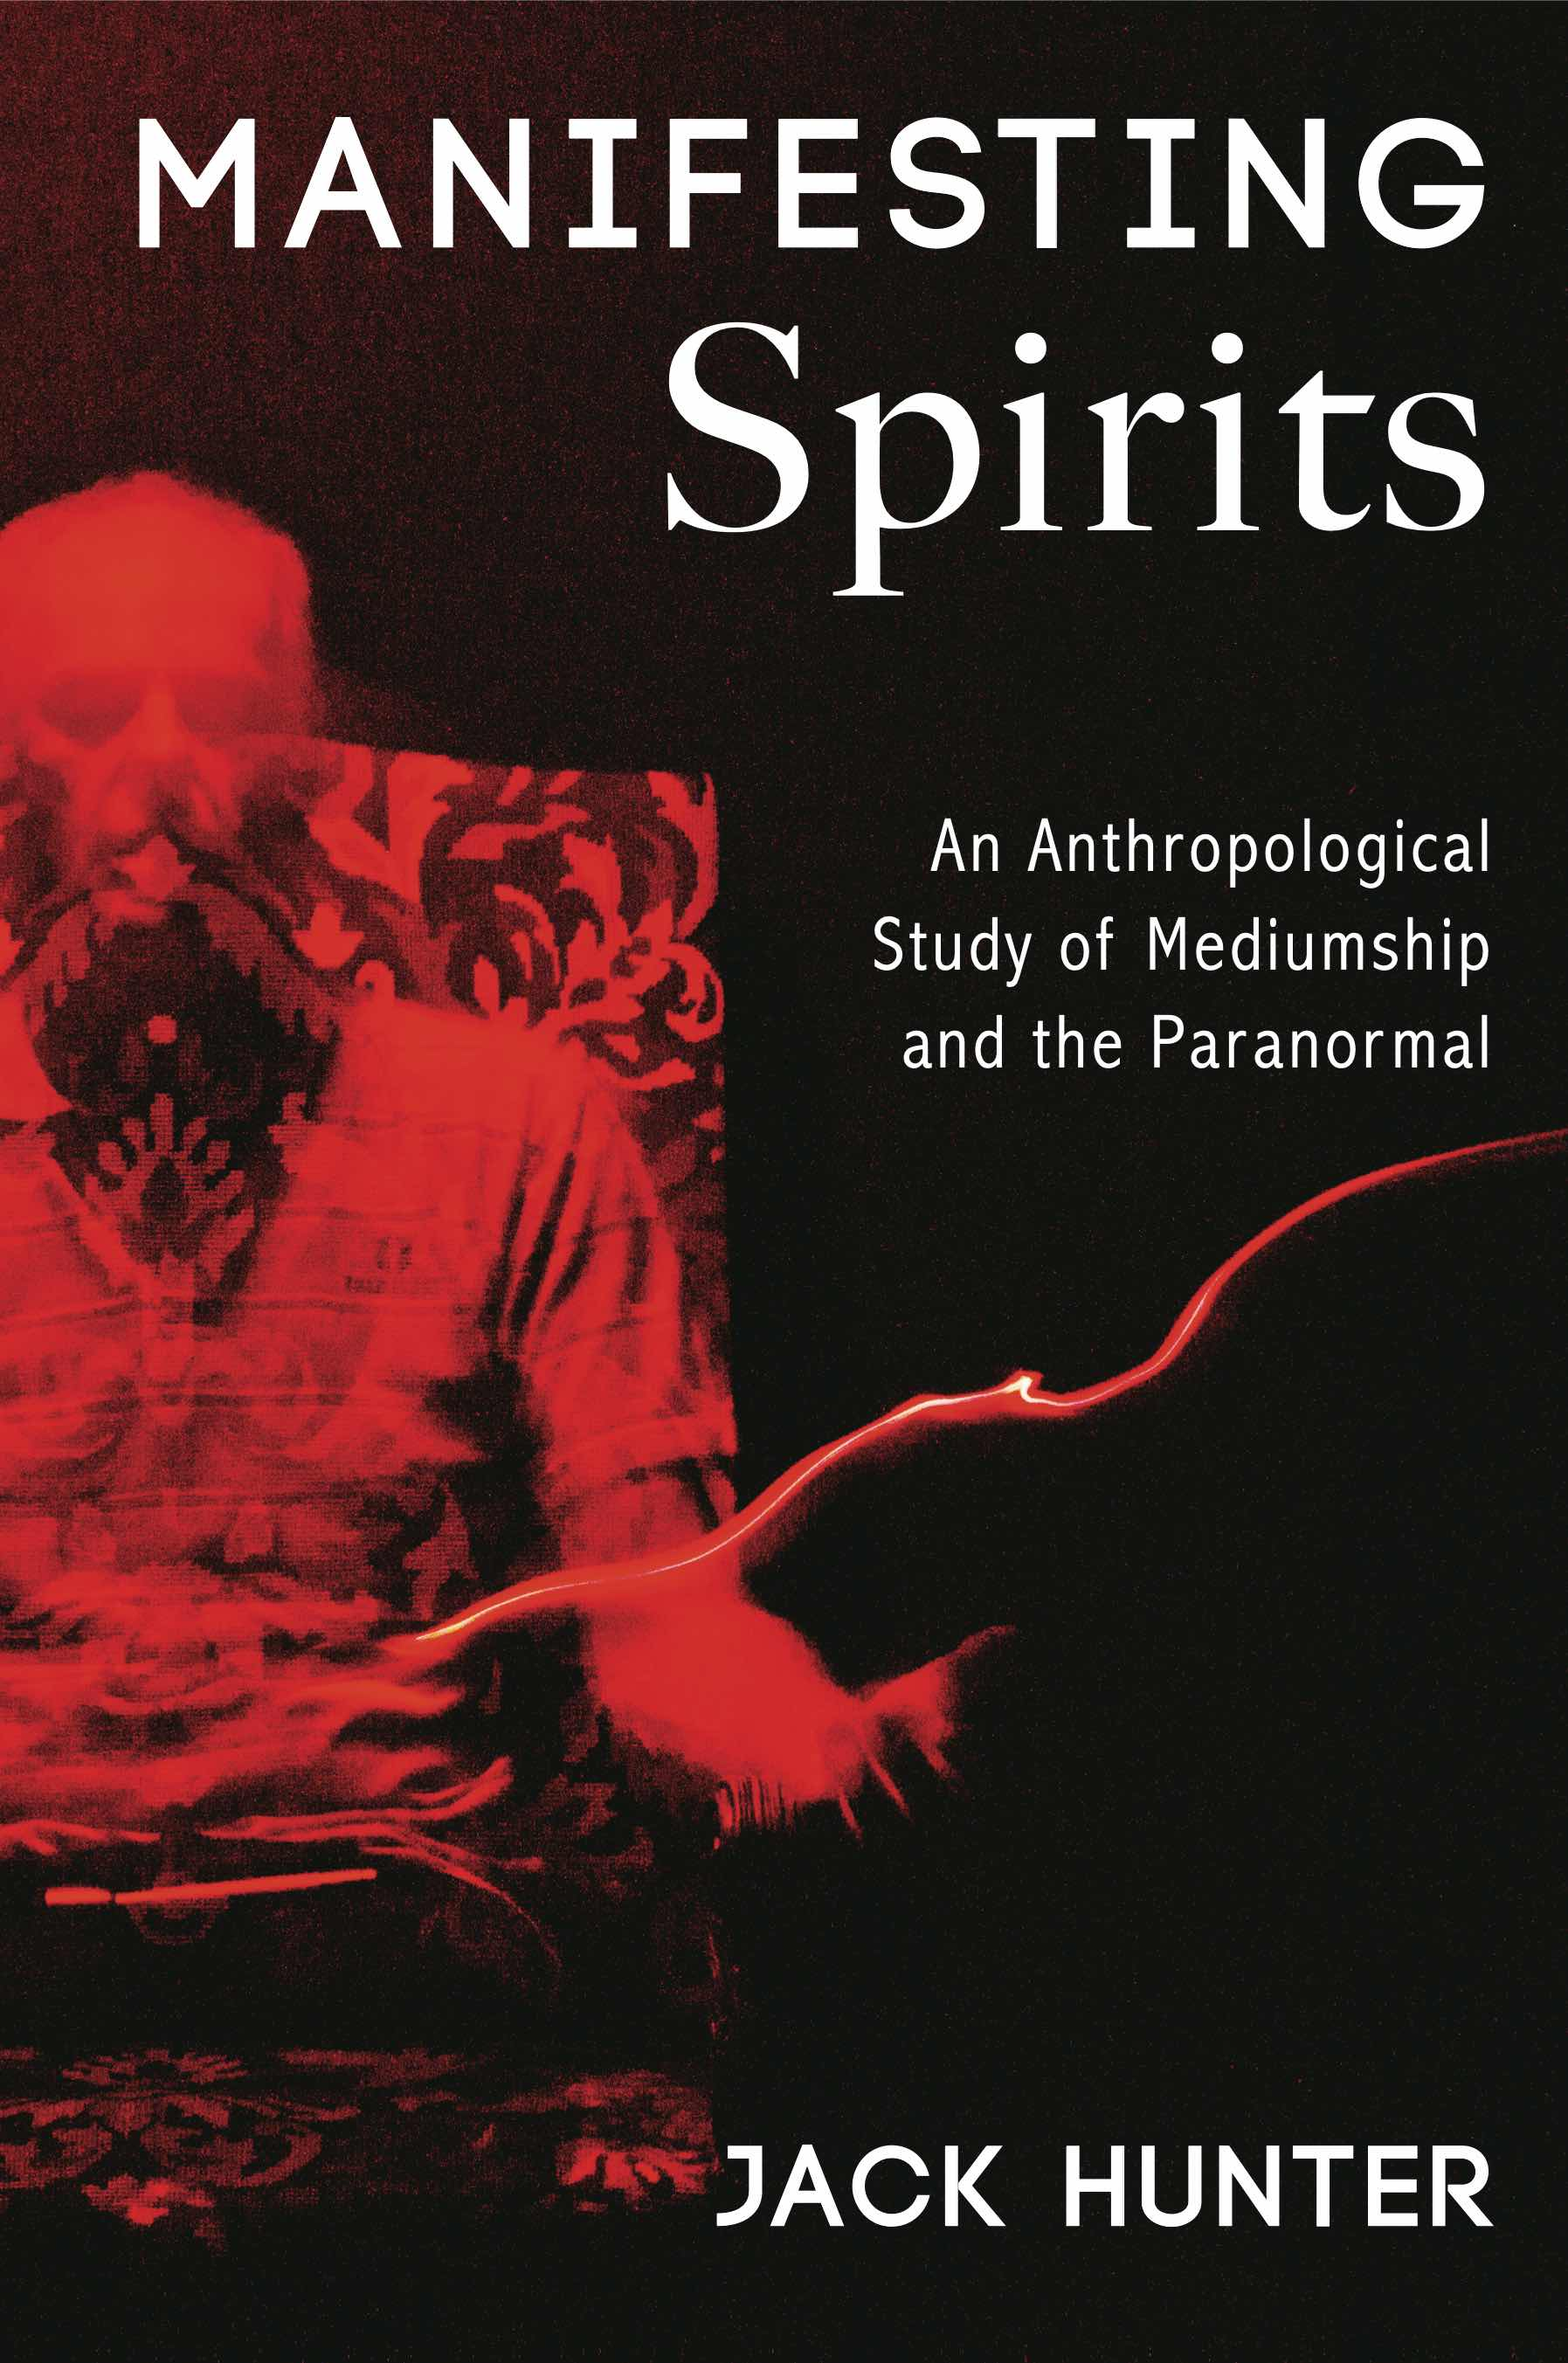 Manifesting Spirits: An Anthropological Study of Mediumship and the Paranormal